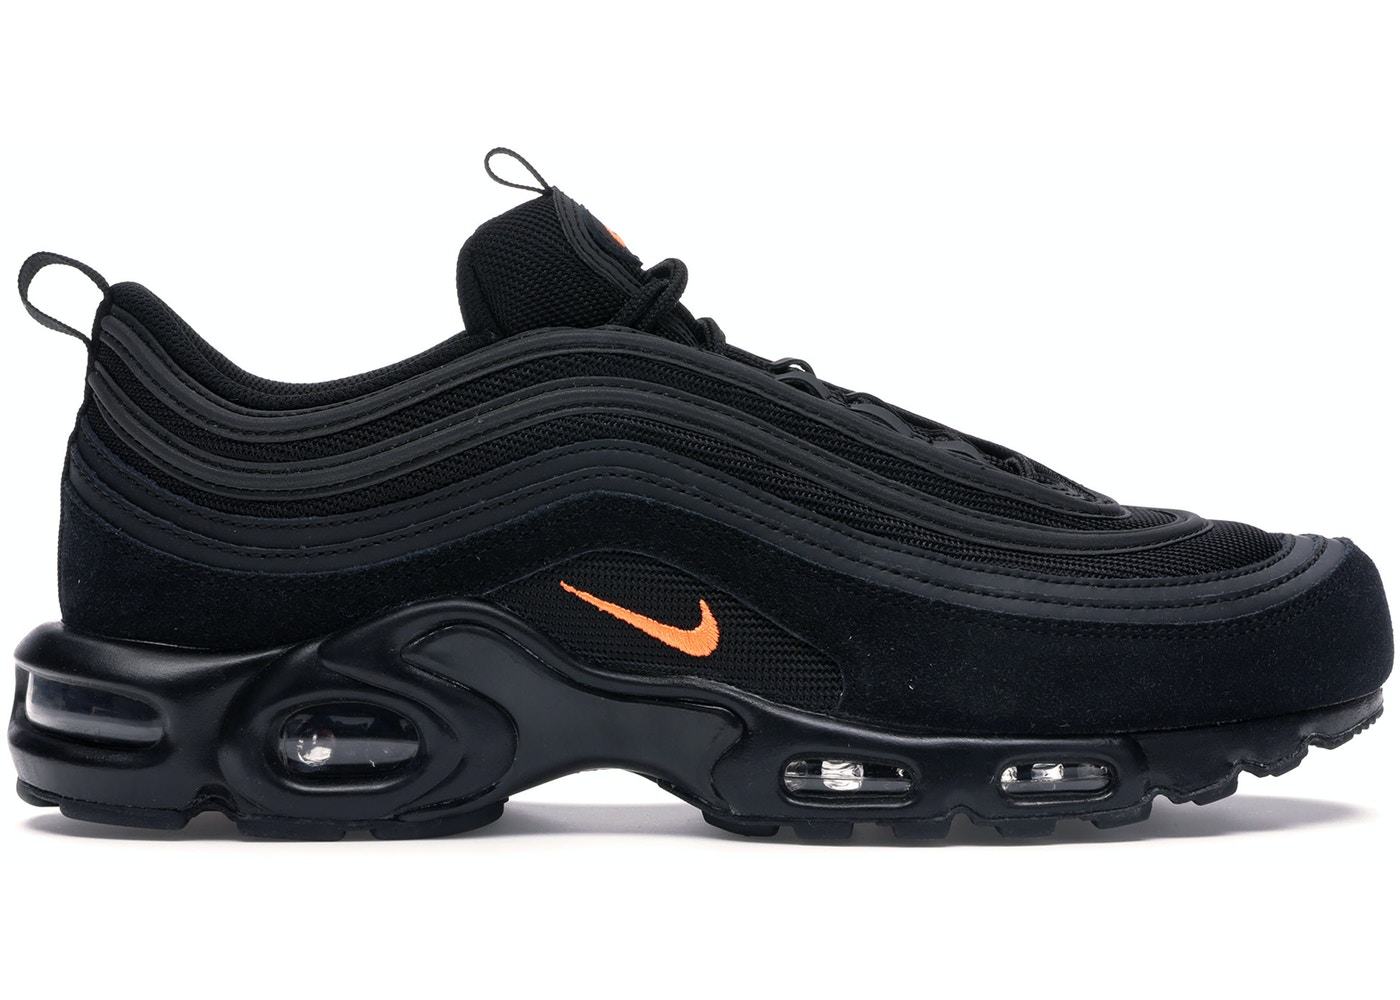 san francisco d7f3e cfc04 Air Max Plus 97 Black Hyper Crimson